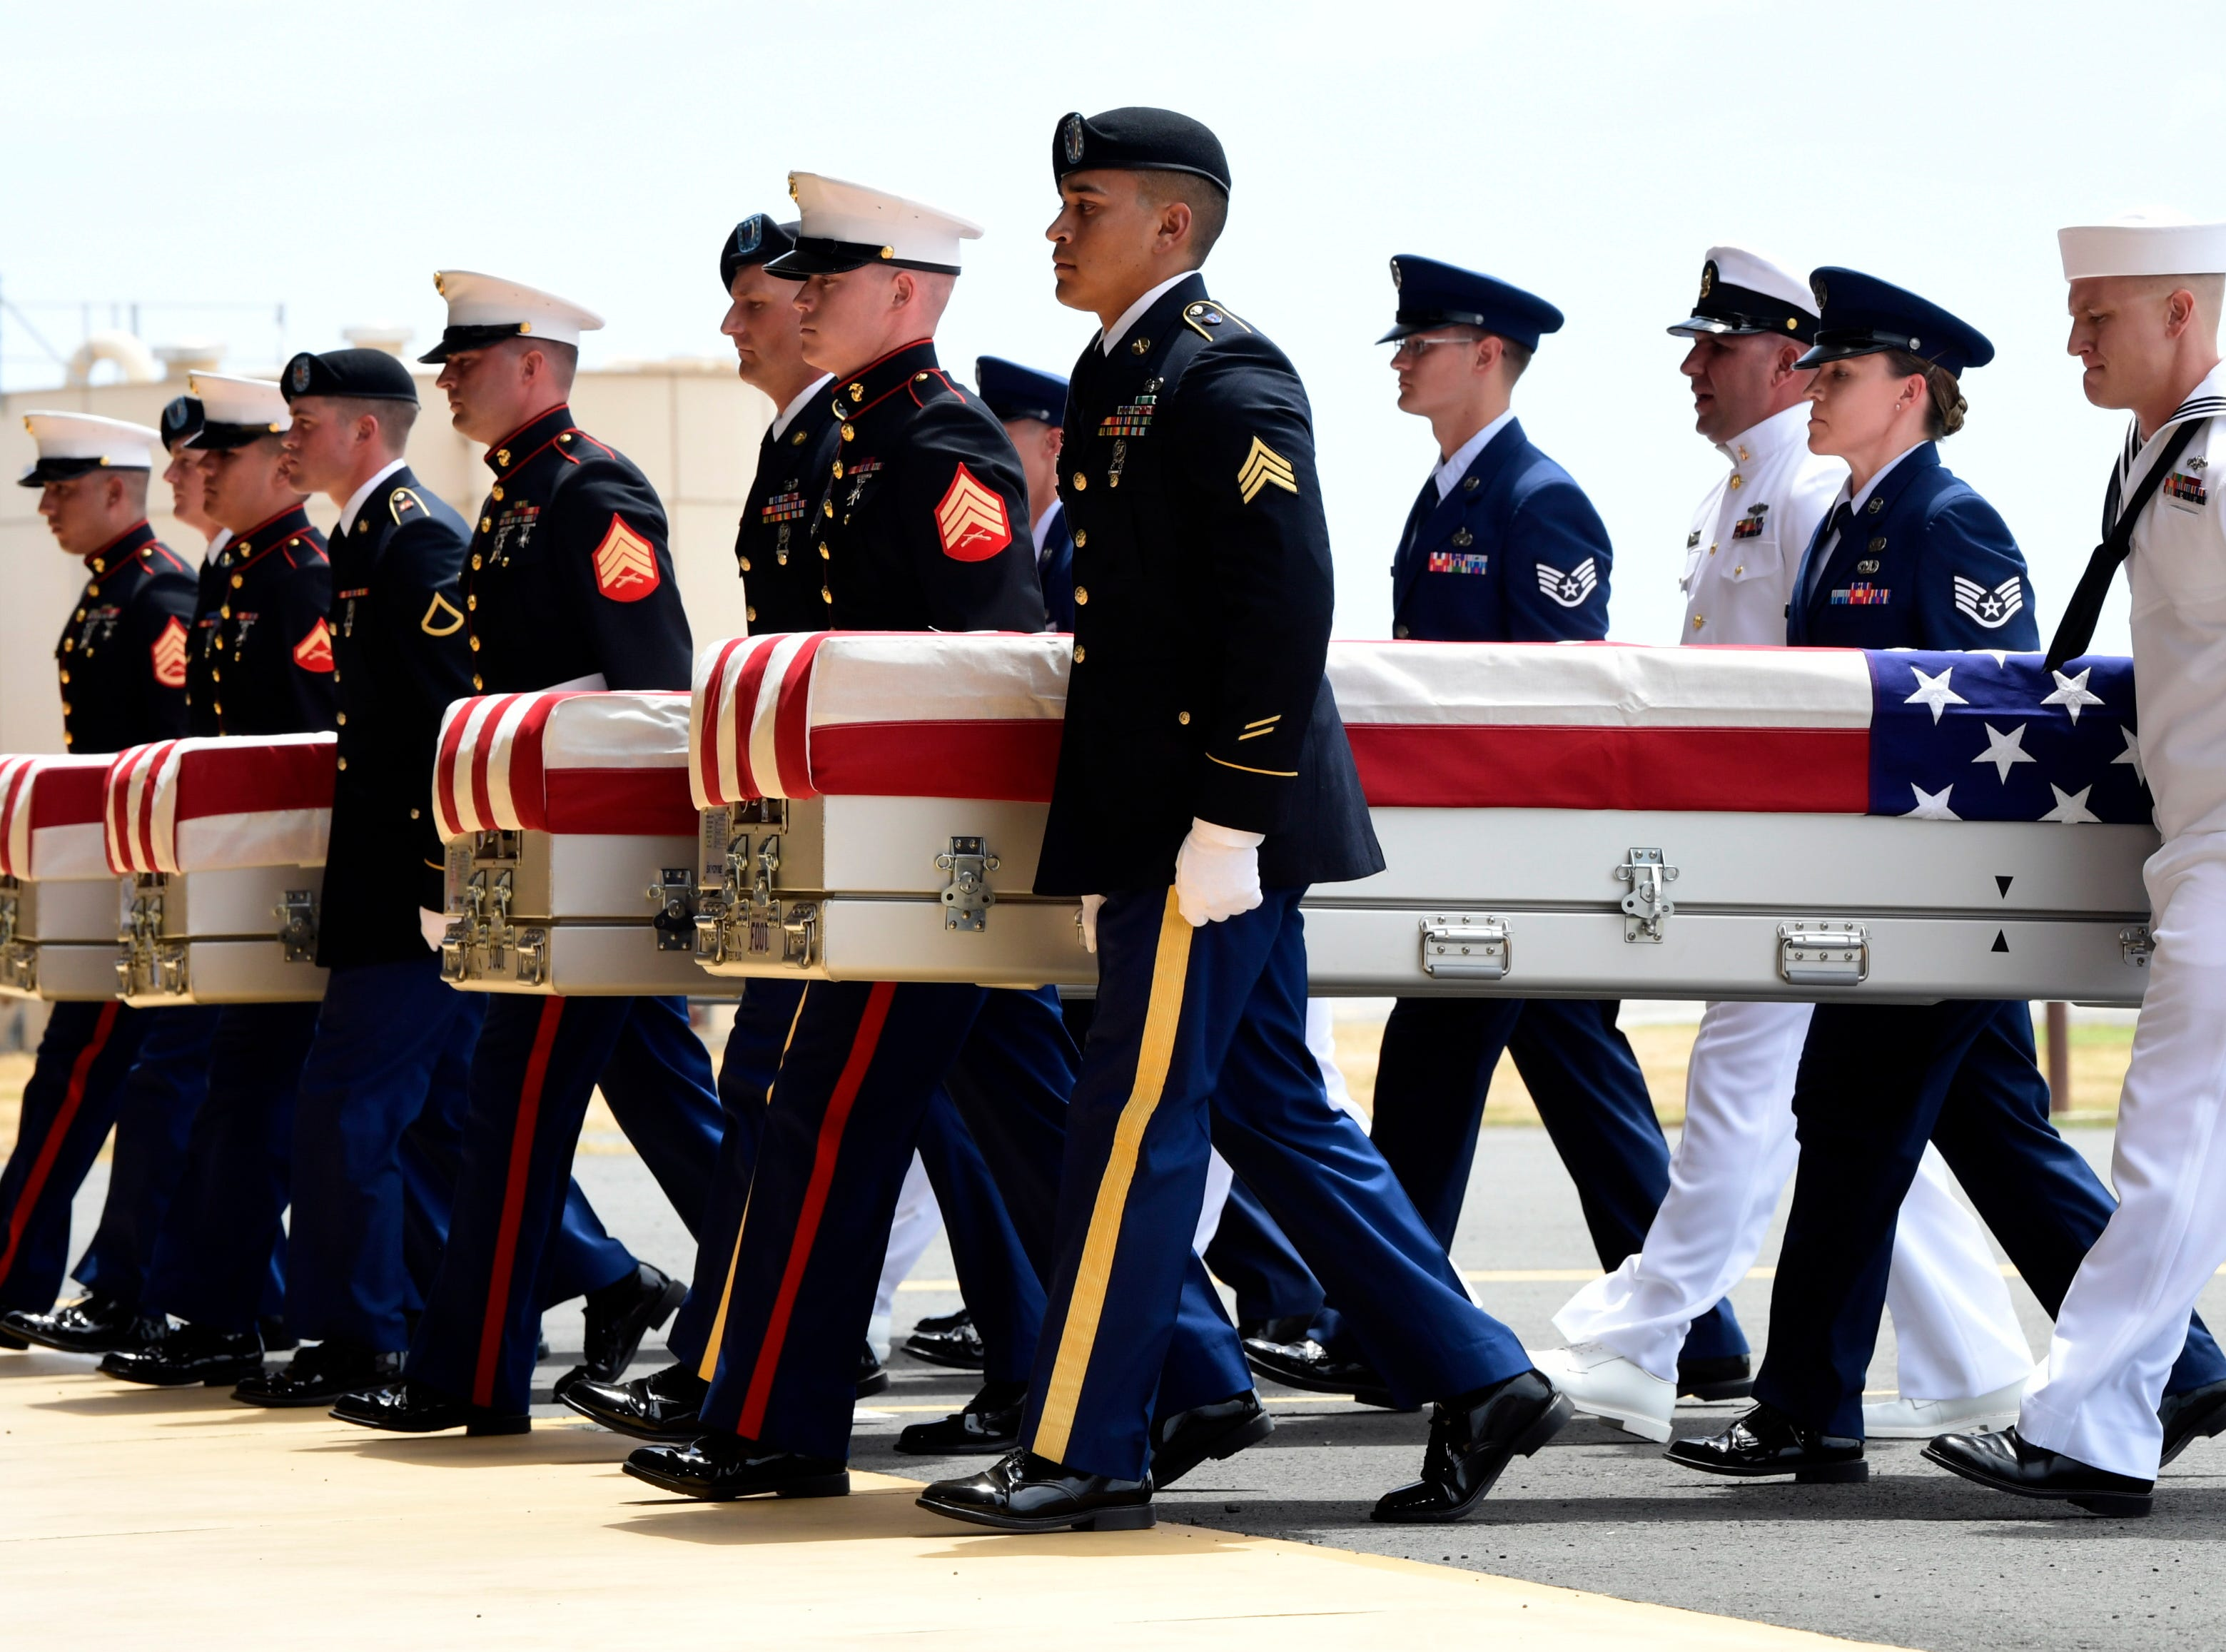 Aug. 1, 2018: Military members carry transfer cases from a C-17 at a ceremony marking the arrival of the remains believed to be of American service members who fell in the Korean War at Joint Base Pearl Harbor-Hickam in Hawaii. North Korea handed over the remains in late July.